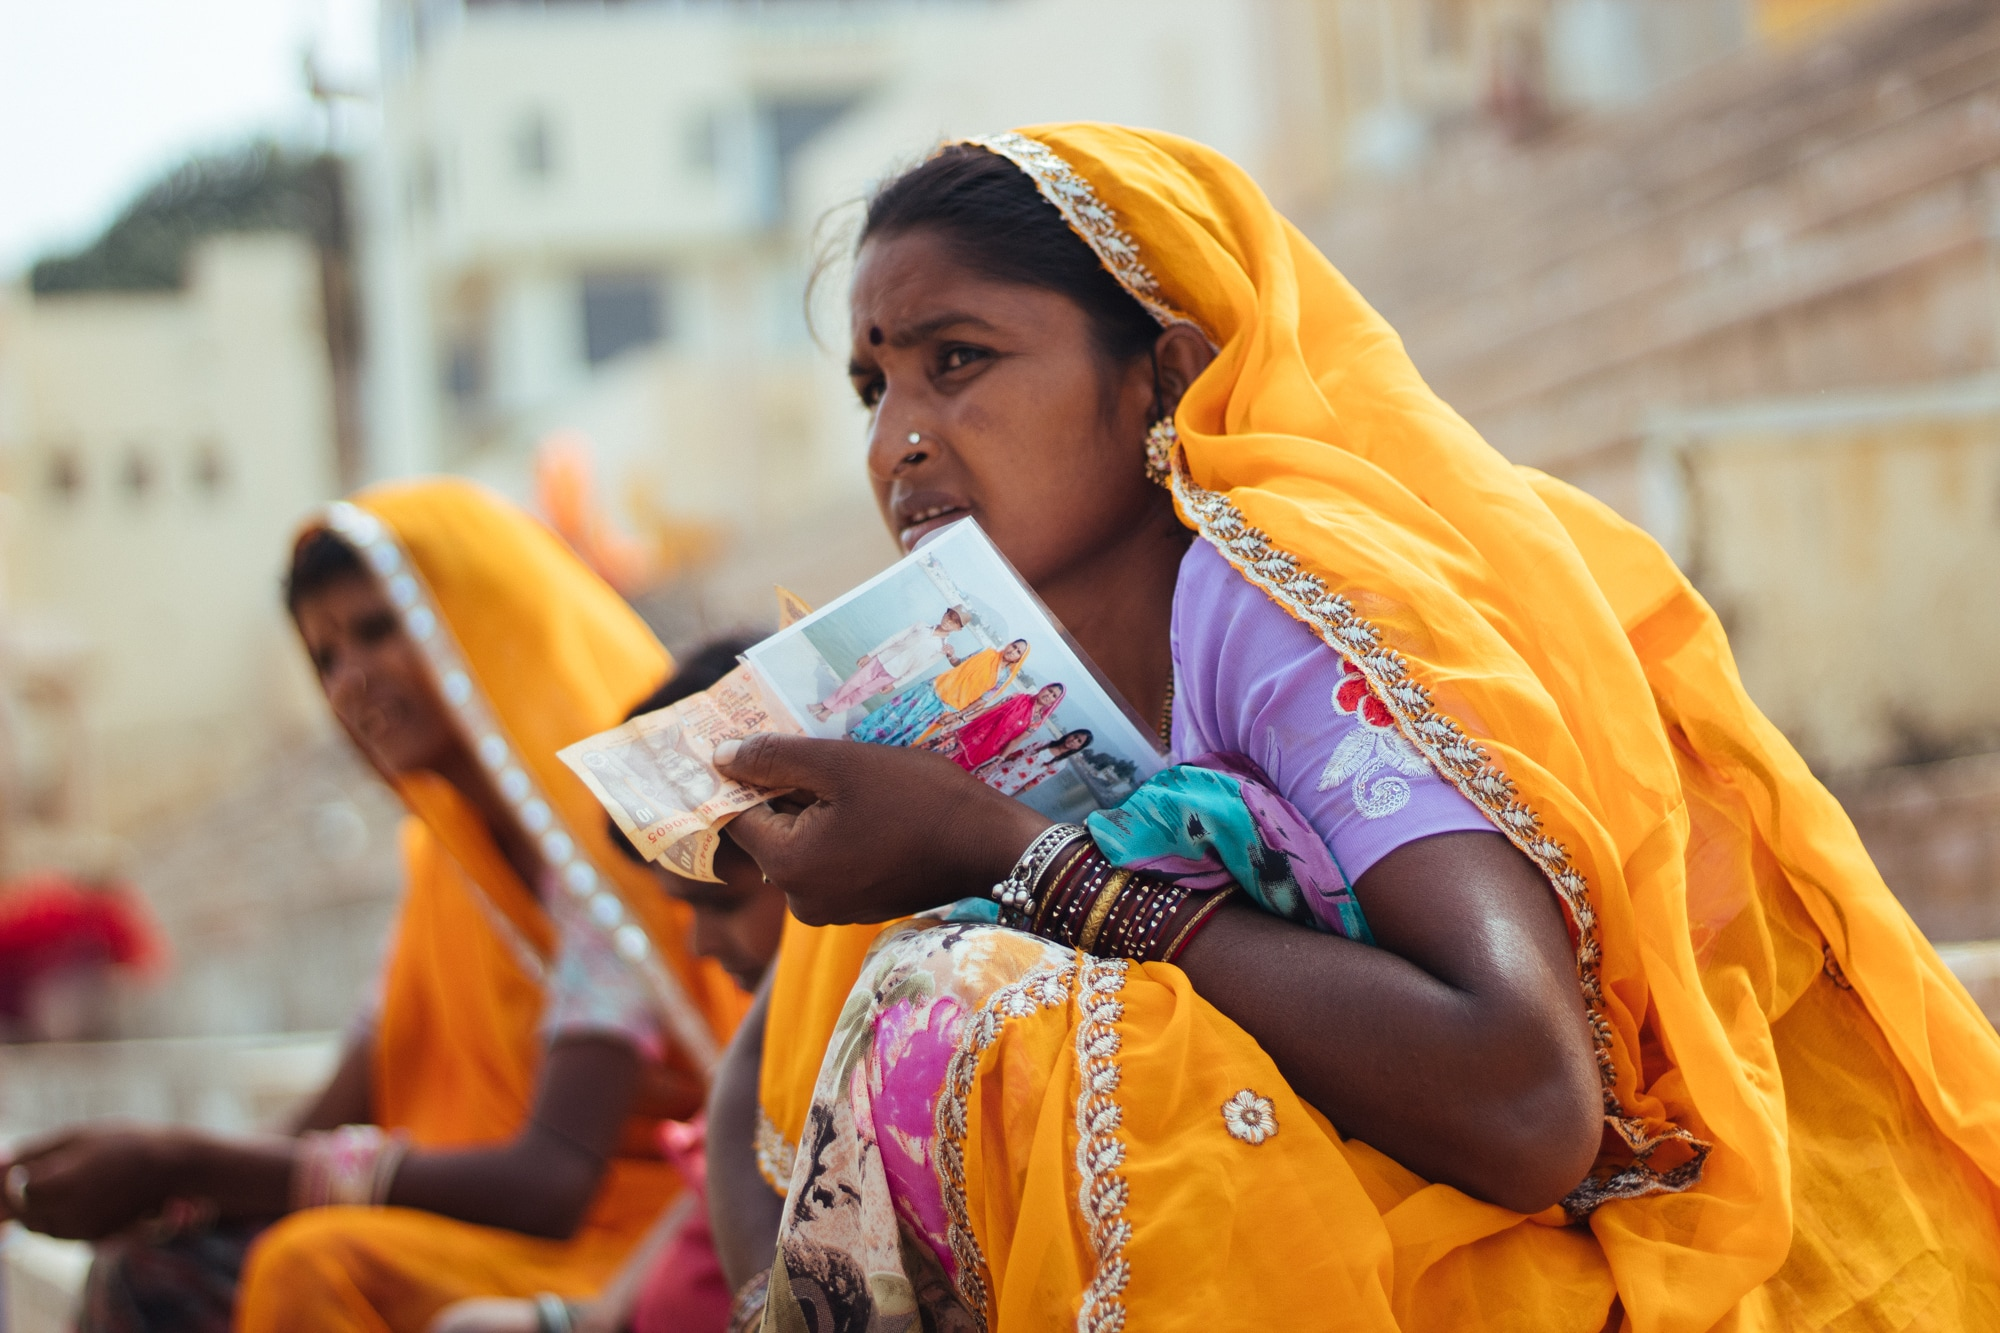 A woman holding picture of her family. Photographers carry portable printers at Pushkar ghat and offer instant photography service to visitors.